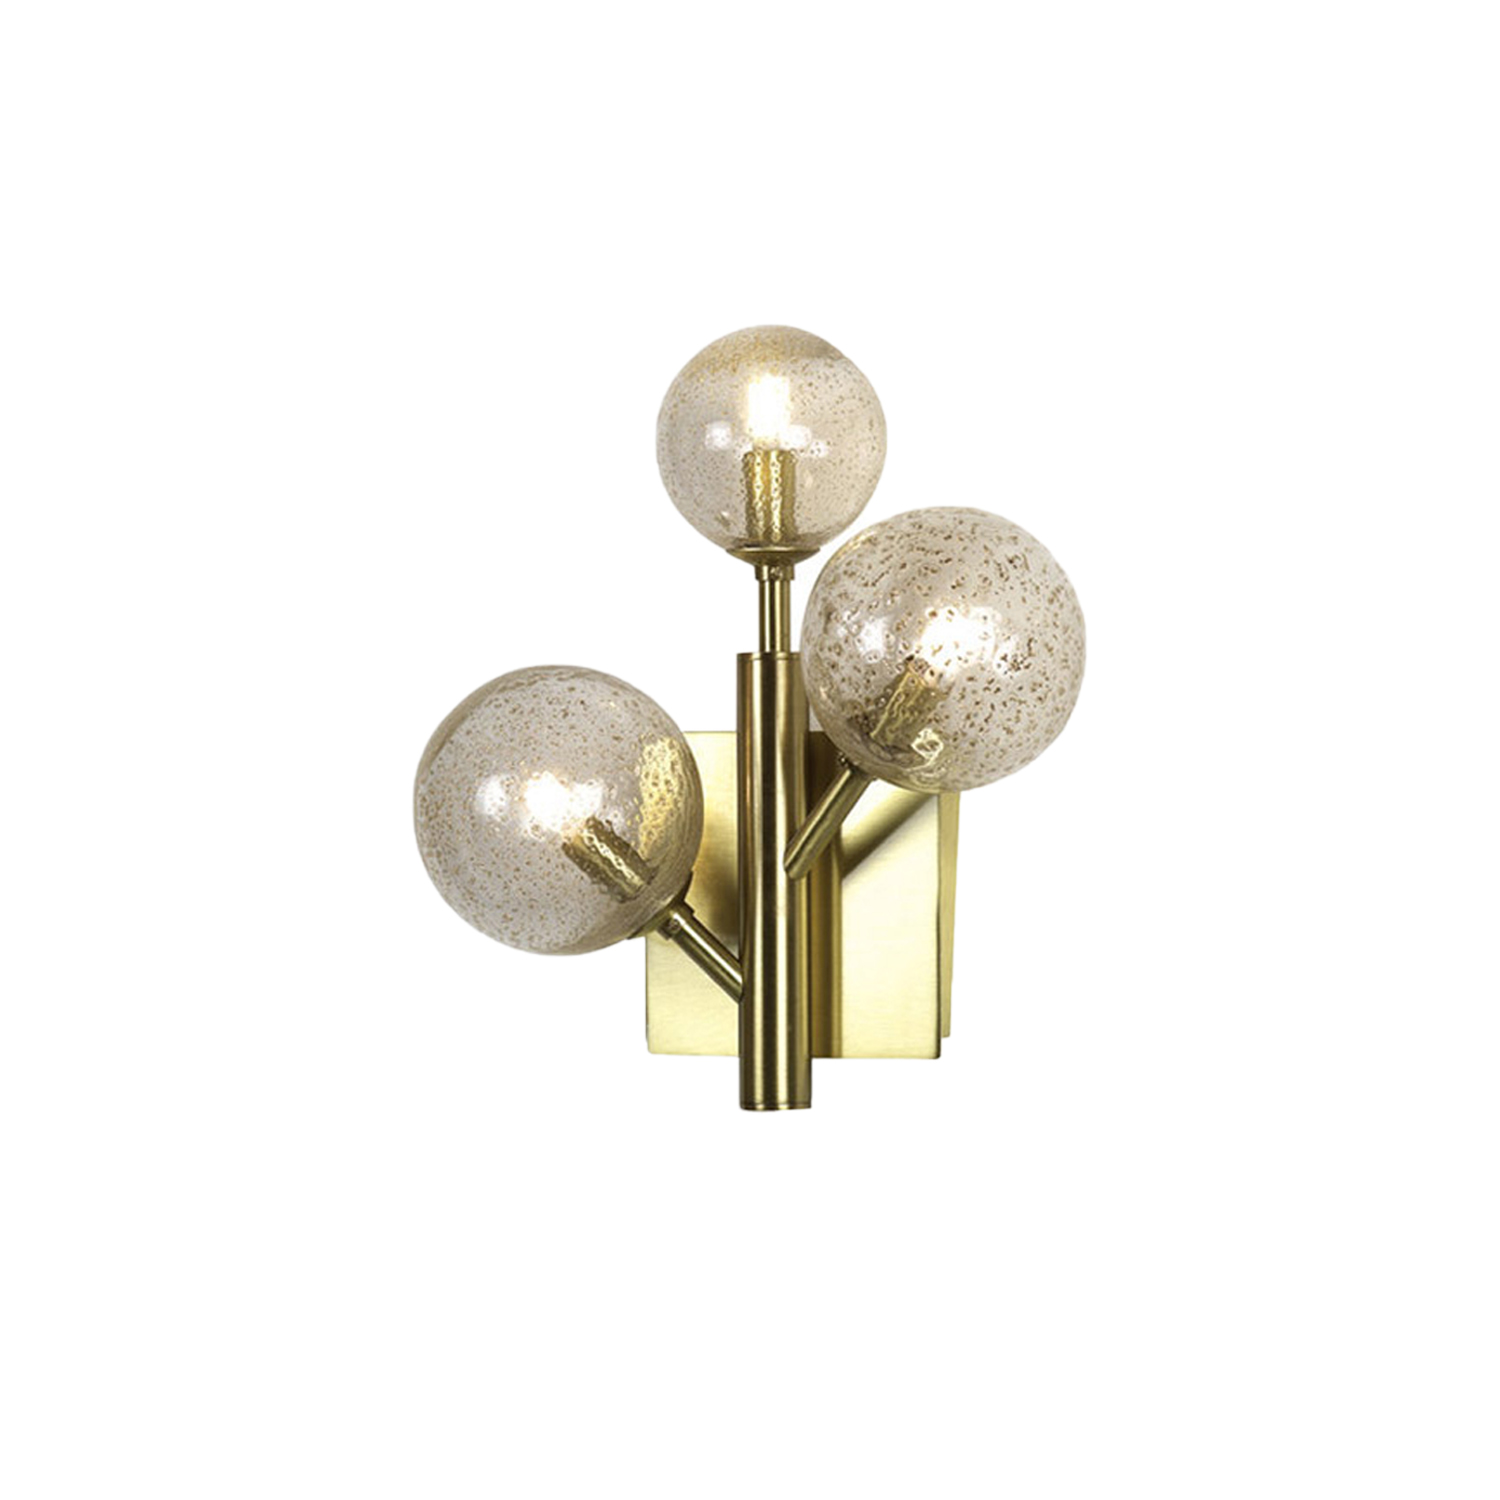 Mimosa Sconce 3 - From our new collection, Mimosa Applique is a contemporary sconce equipped with 3 glass spheres. Each ball is realised by the antique technique of glass blowing. After the processing in the furnace, glass spheres are pierced to be assembled with the frame and the light bulb E27 inside each ball. Available in more colours of frame and glass.    Matter of Stuff